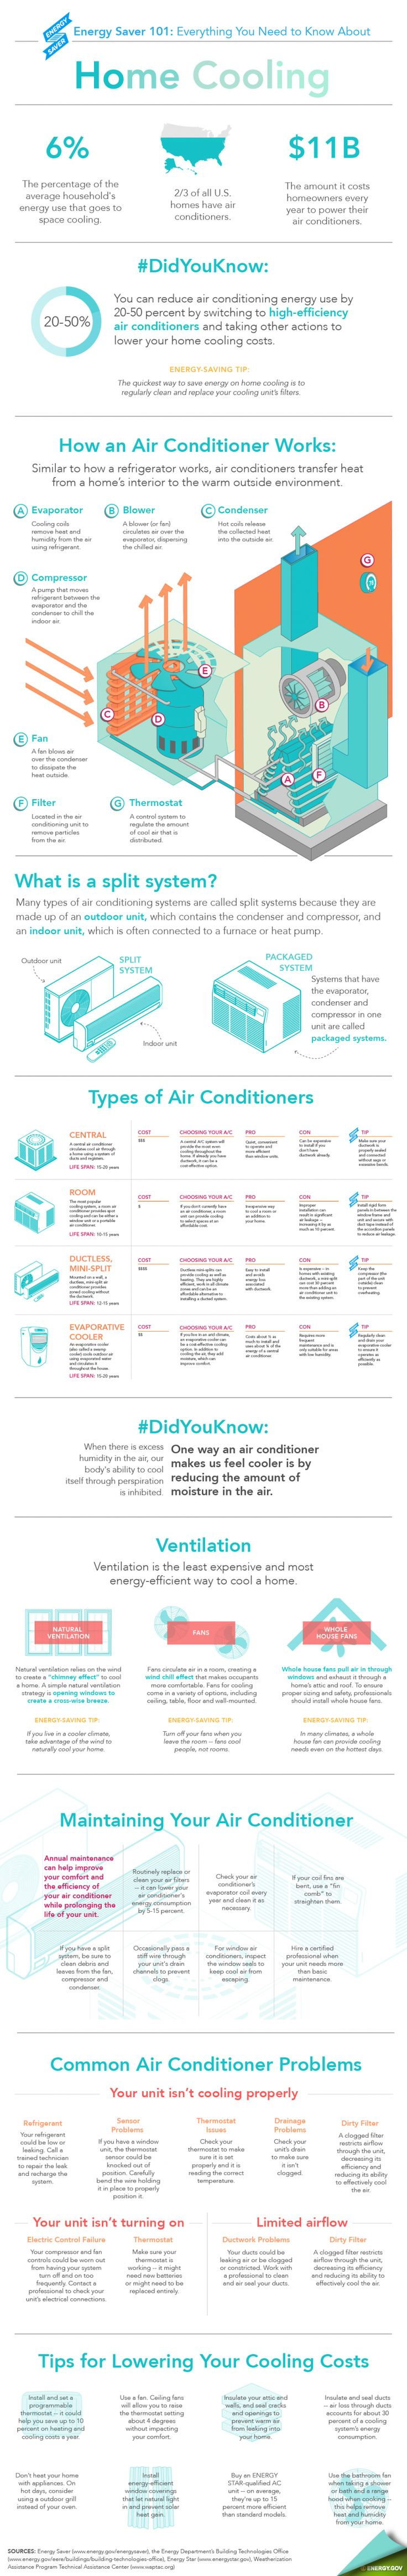 To Save Energy This Summer, Make Sure You're Picking The Right #AirConditioner For Your Needs. -Energy.gov #HomeOwnerTips